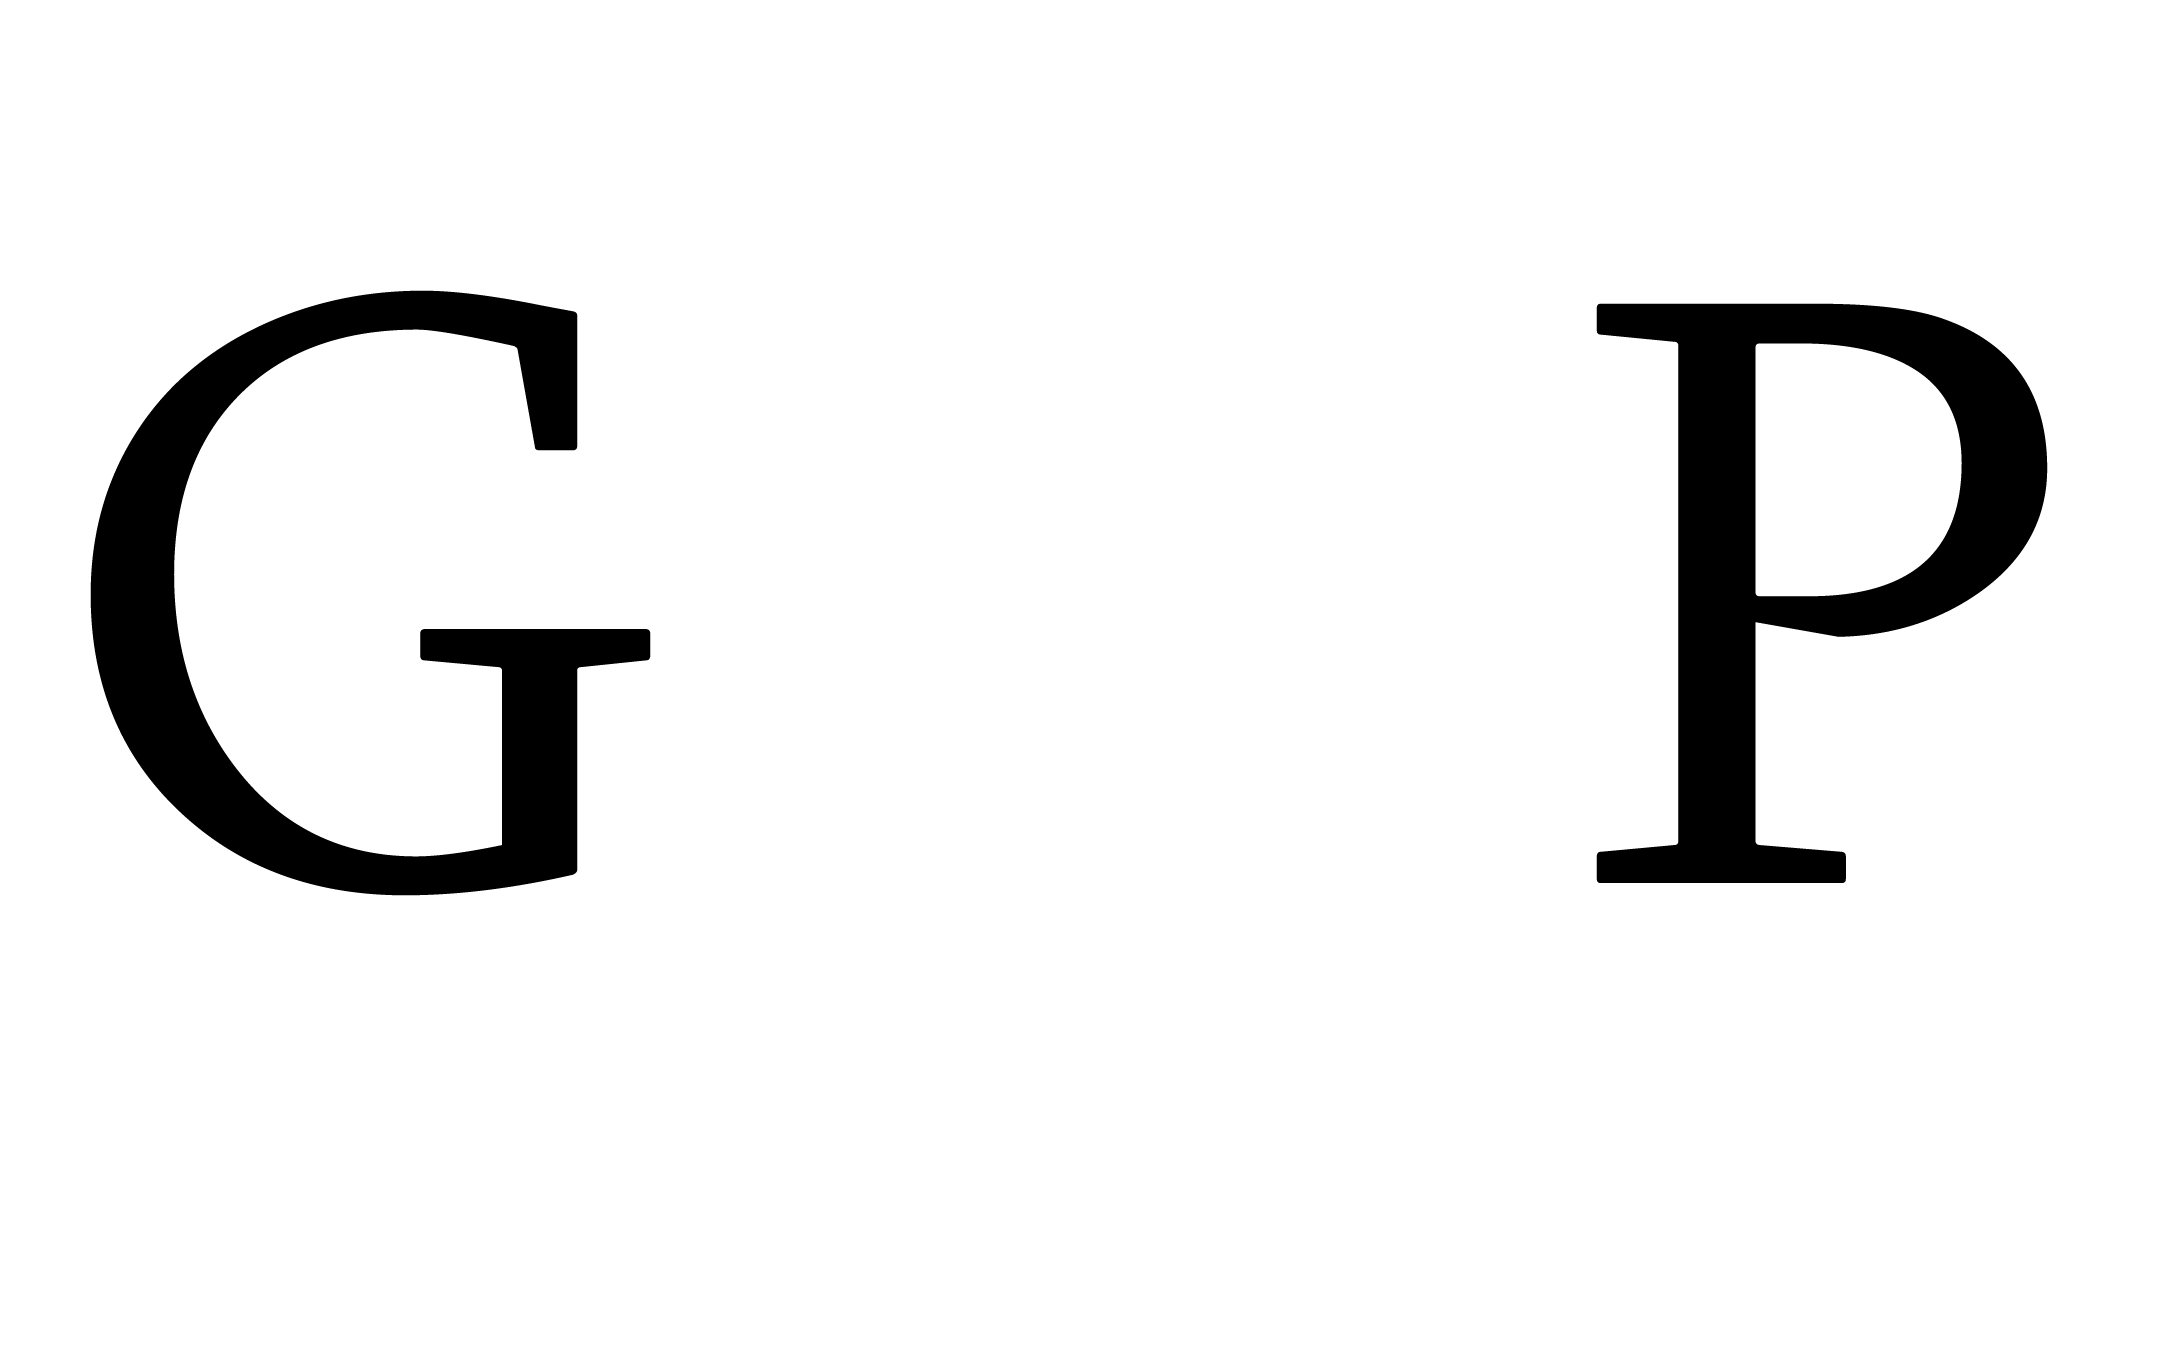 Grand Canyon Press